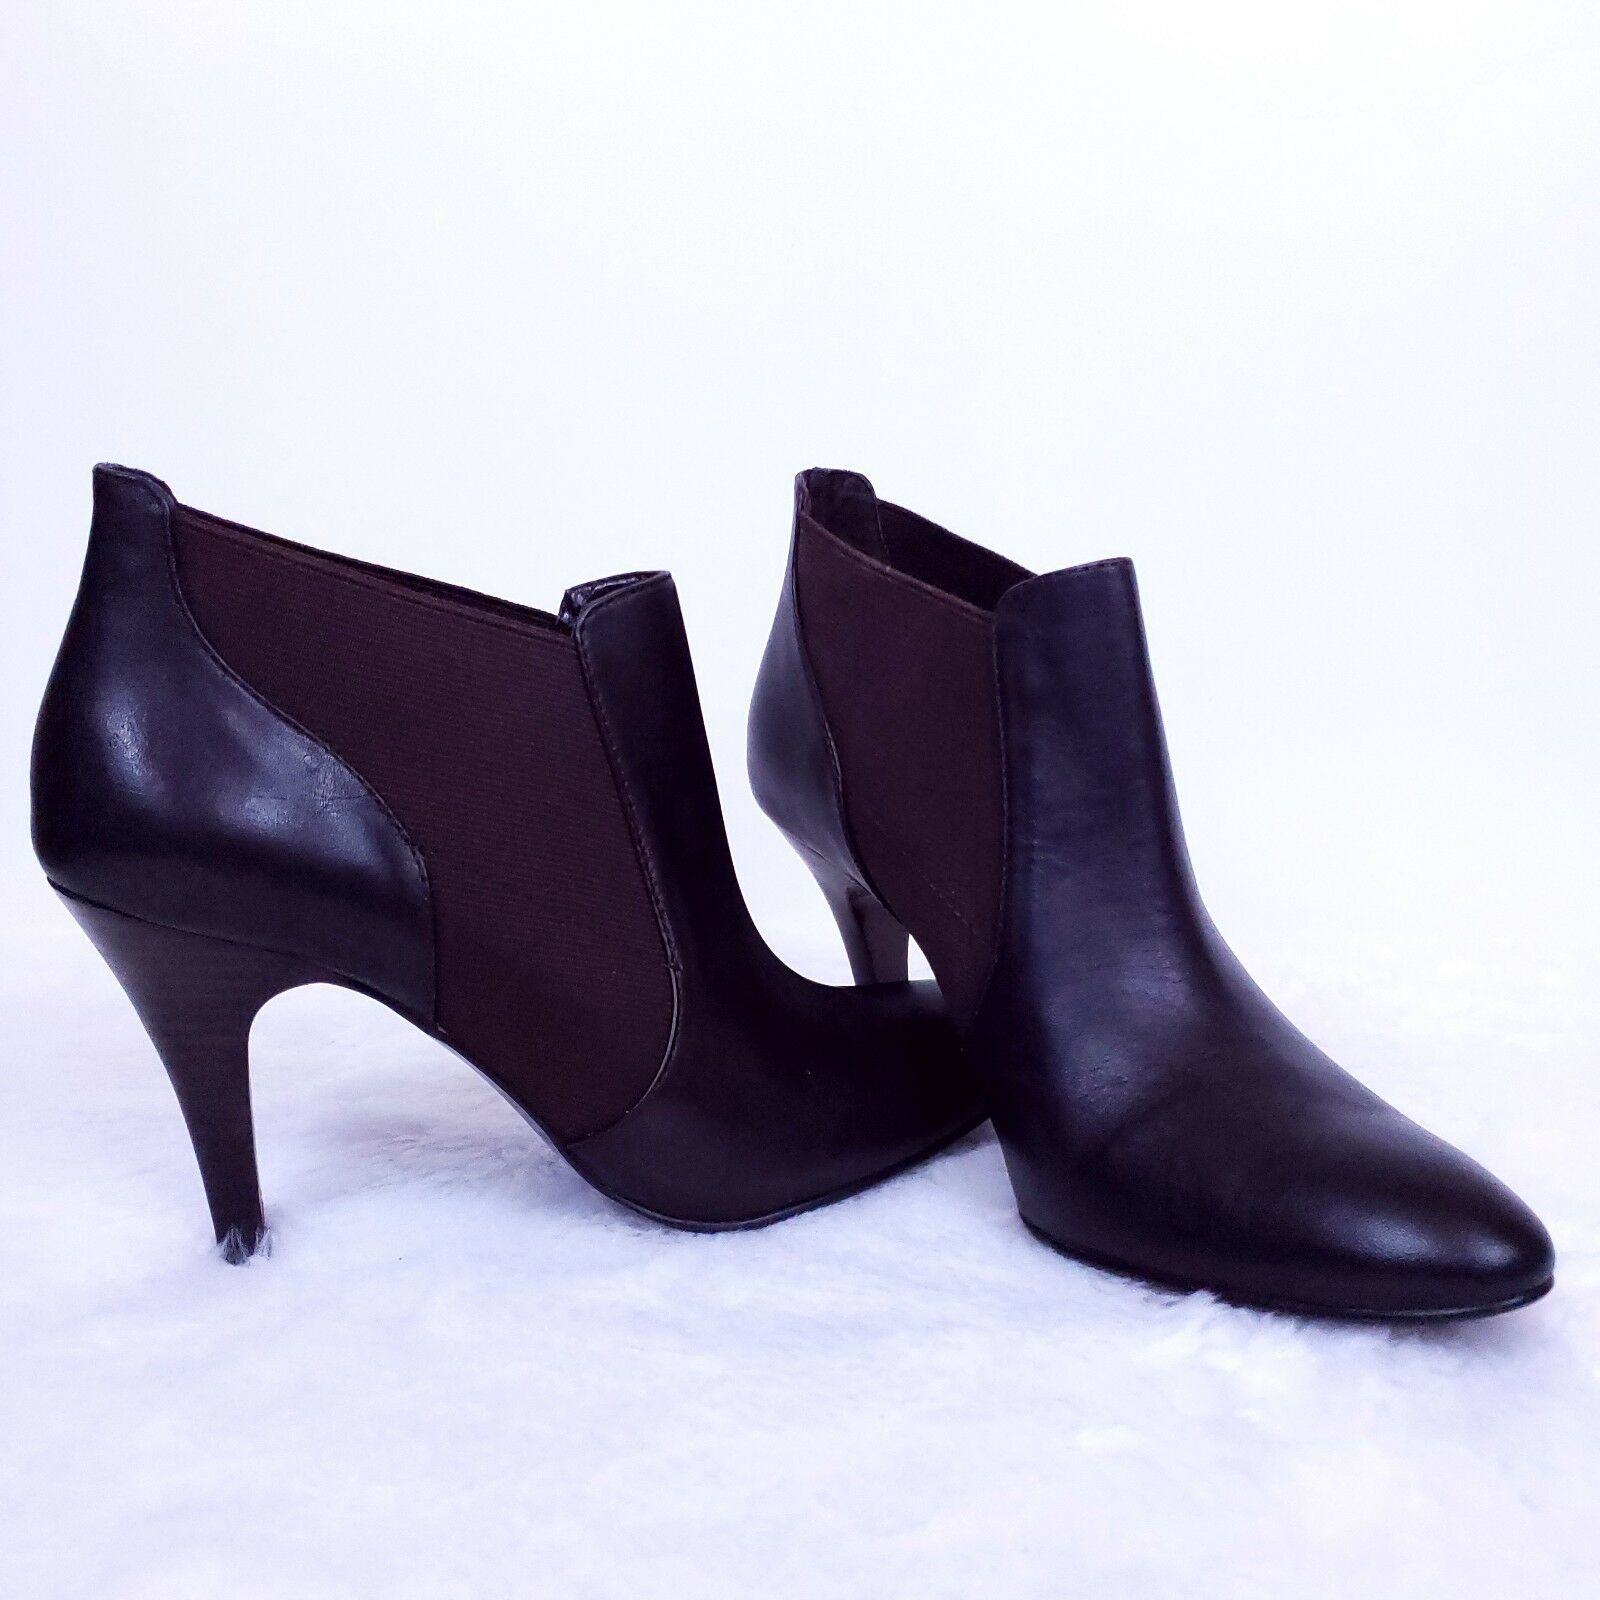 Worthington Women Heels Fancy Cone Brown Size 7M (B) - New with Box